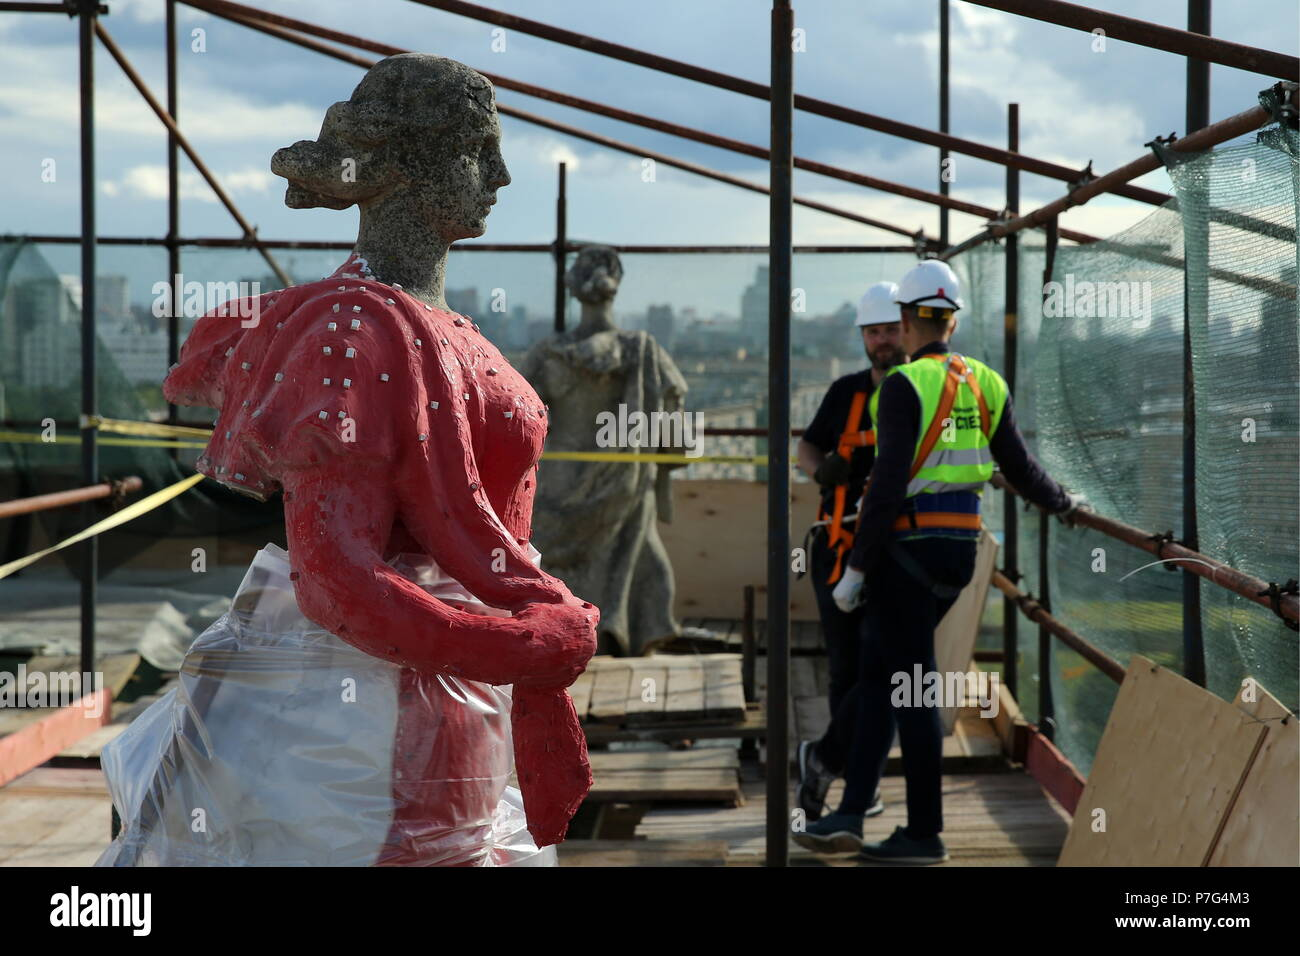 Moscow, Russia. 05th July, 2018. MOSCOW, RUSSIA - JULY 5, 2018: Statues of girls decorating an apartment block at 30 Leninsky Prospekt Street. Sixteen statues of WWII soldiers and girls greeting them from the frontlines made in the late 1940s are to undergo extensive restoration. Alexander Ryumin/TASS Credit: ITAR-TASS News Agency/Alamy Live News - Stock Image